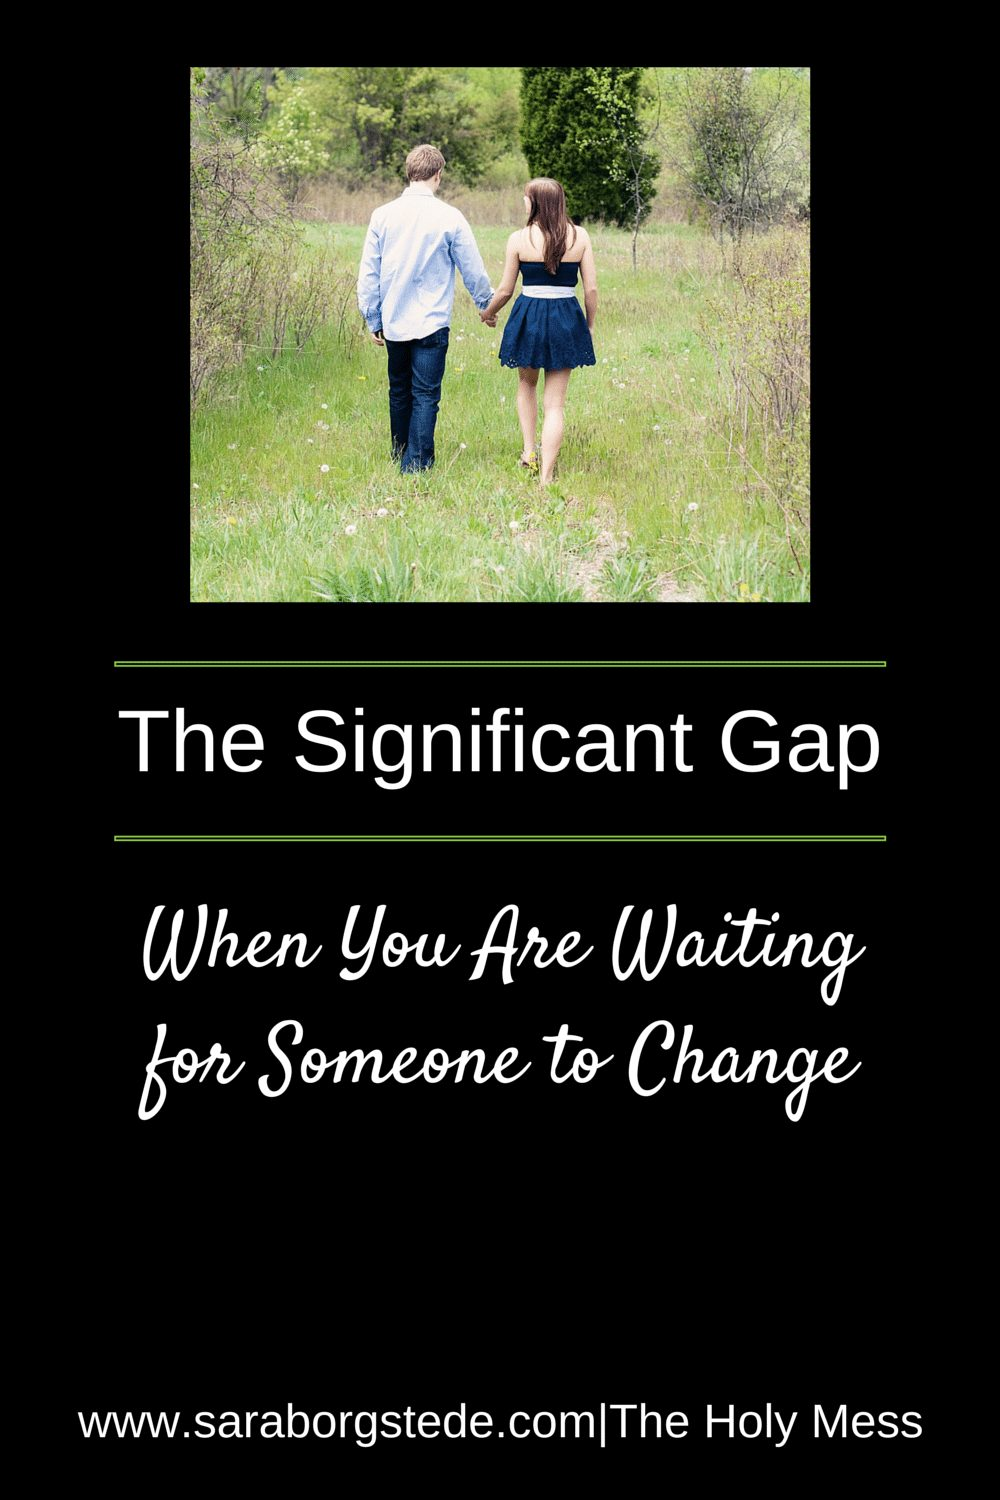 The Significant Gap